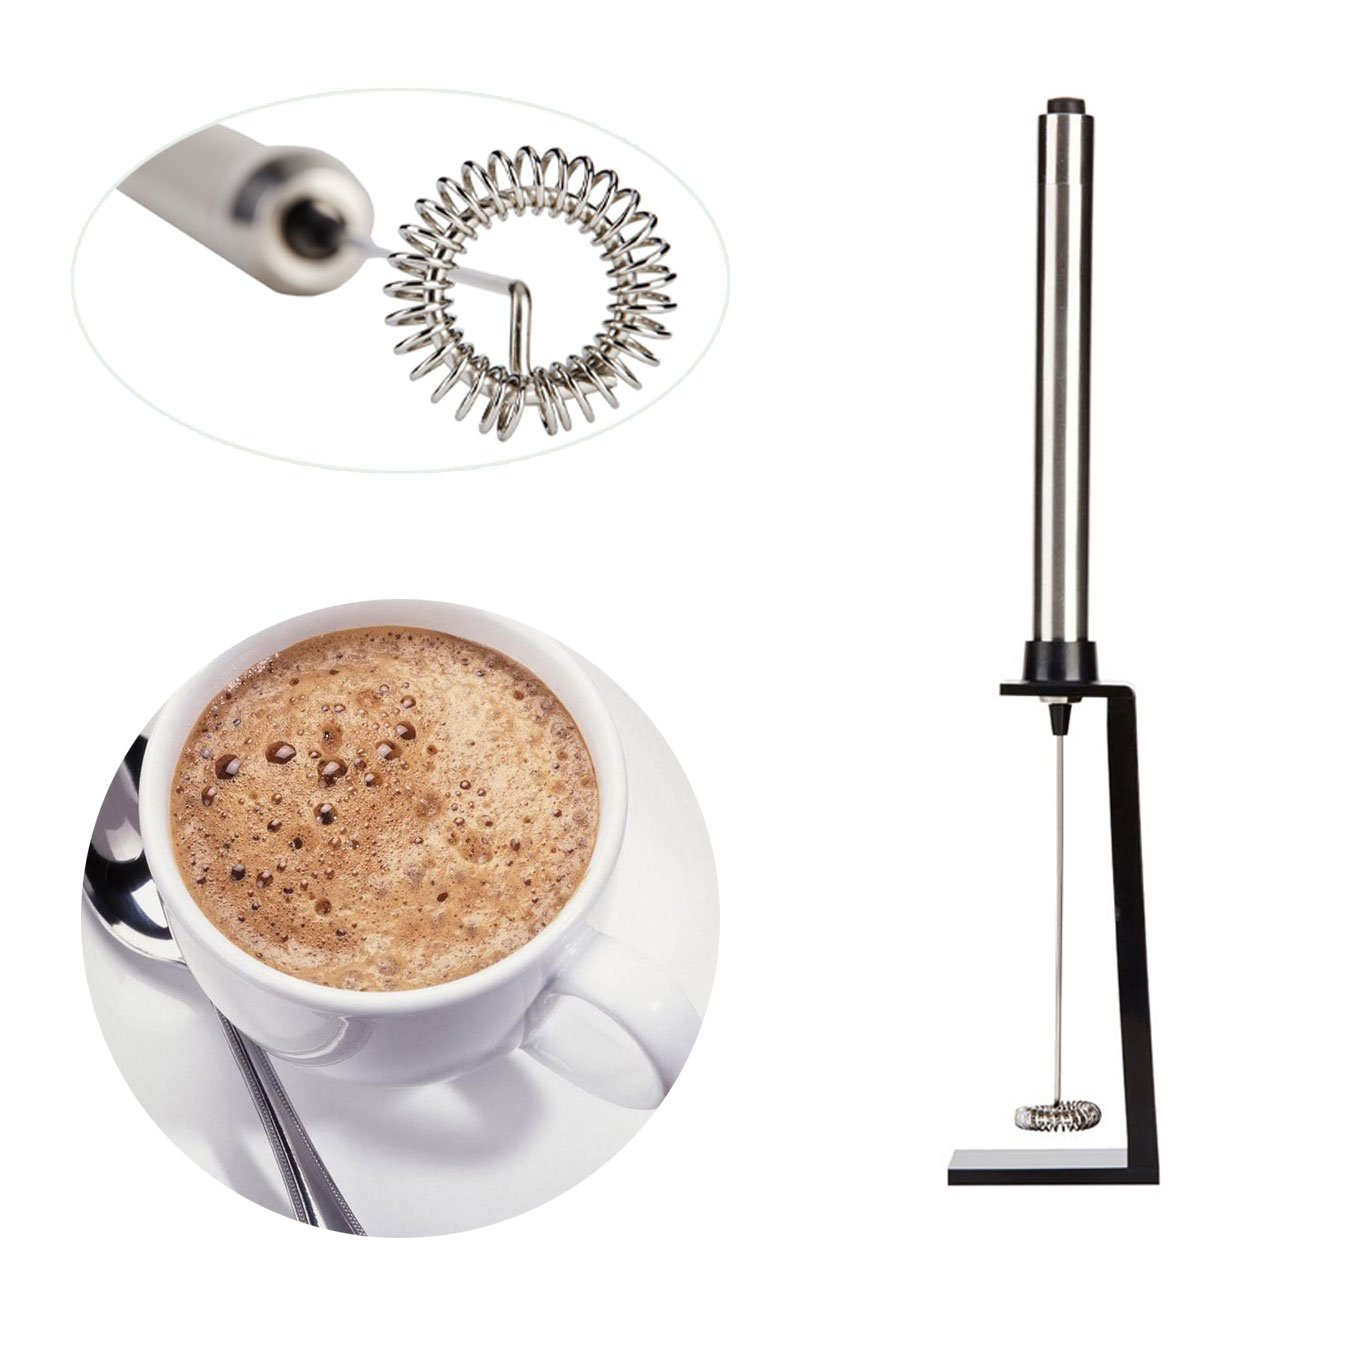 Bedrocker® High Quality Handheld Electric Stainless Steel Milk Frother-Best Hand Held Milk Foamer Wand with the Free Bonus Mounting Bracket